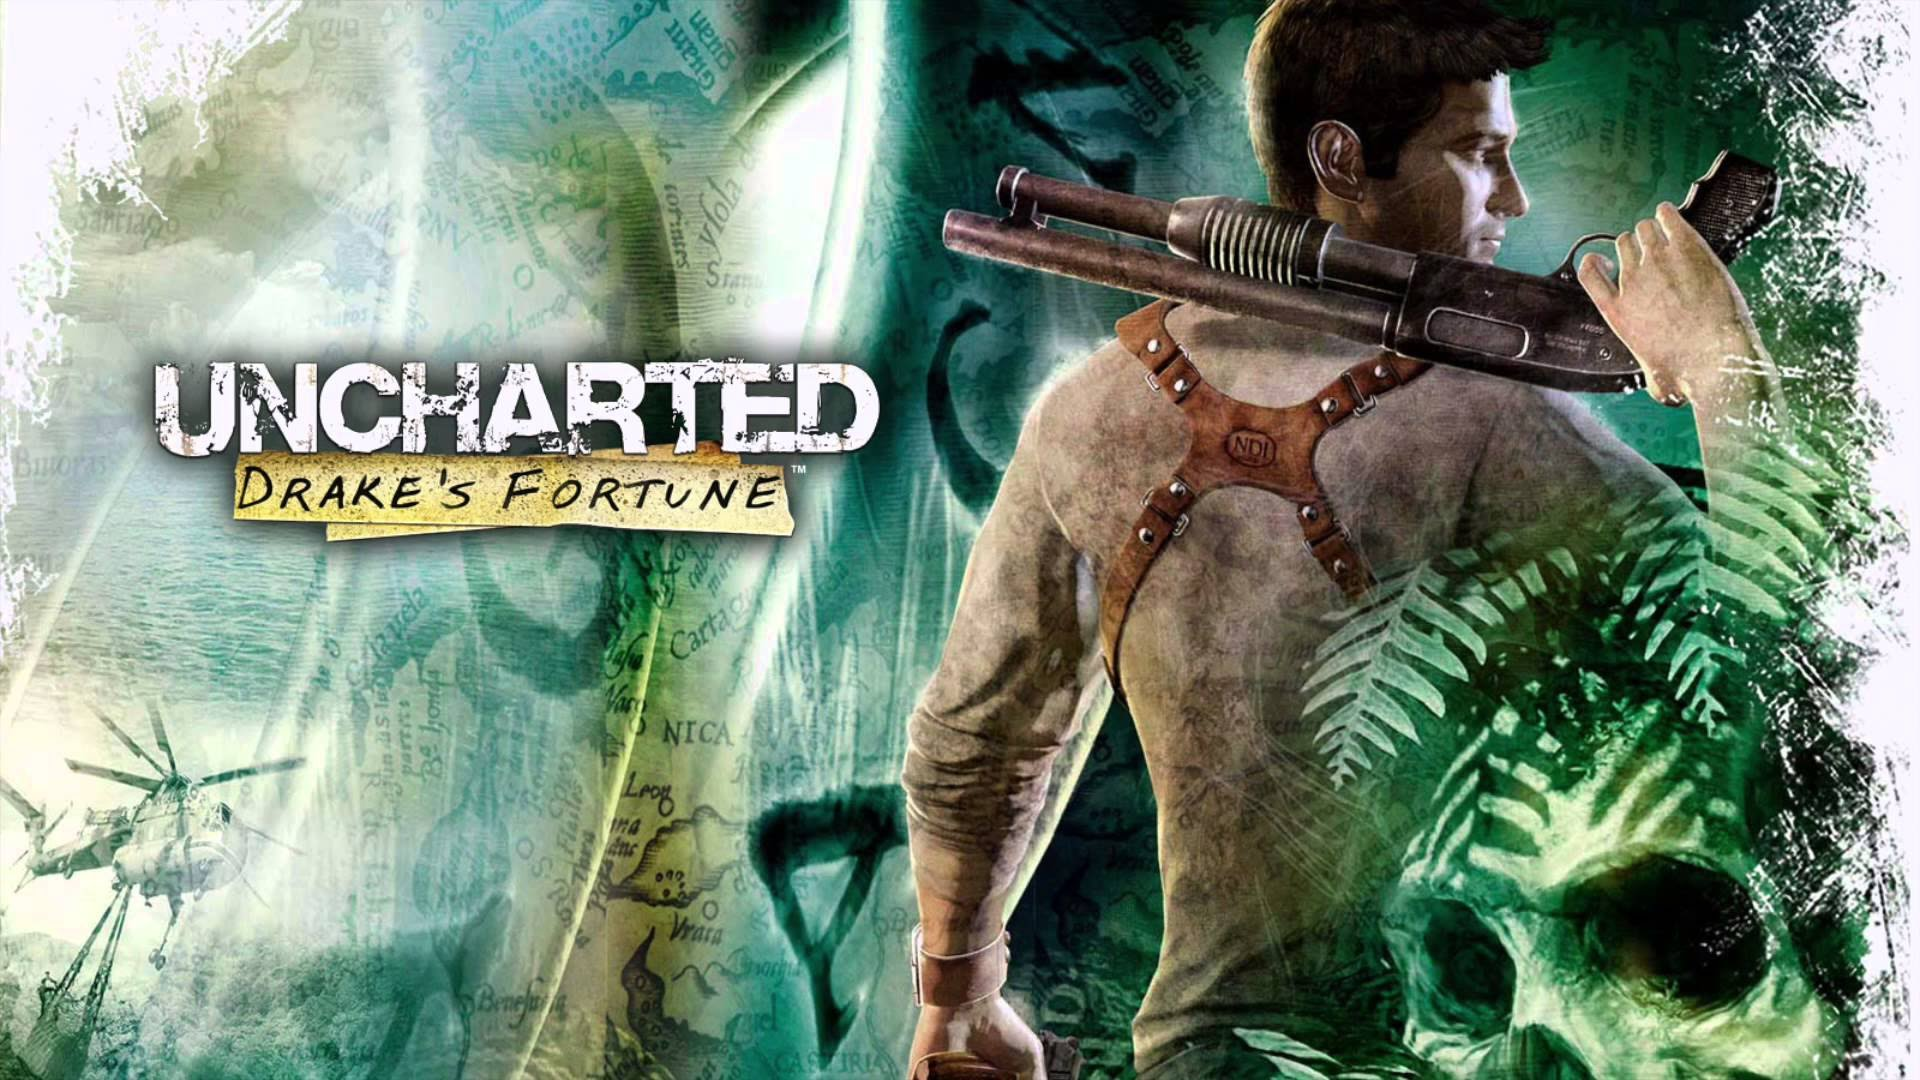 Uncharted Drakes Fortune Quick Review